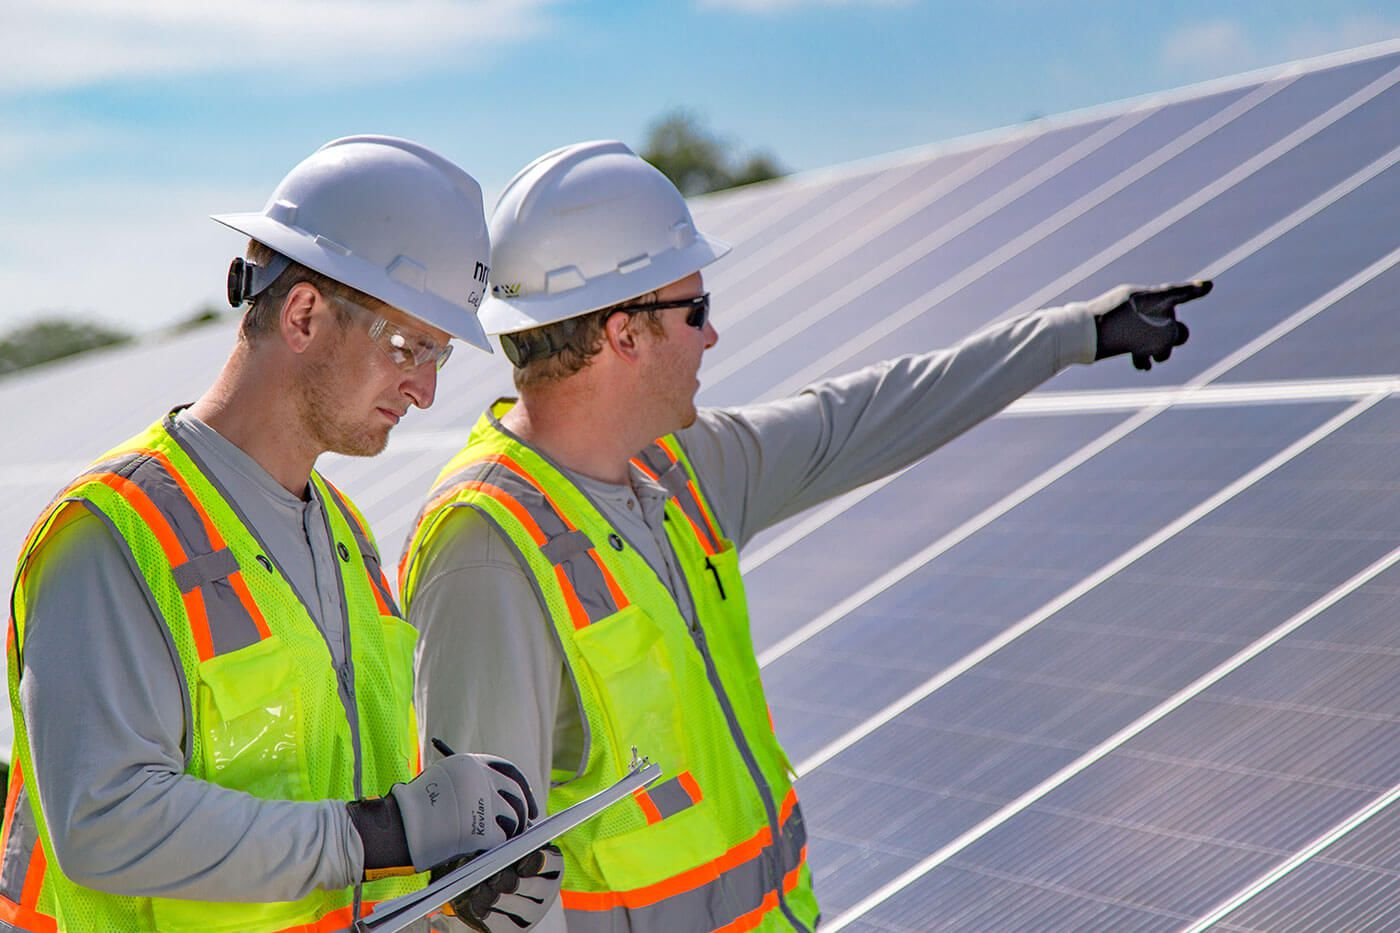 Two men in hard hats checking the solar panels